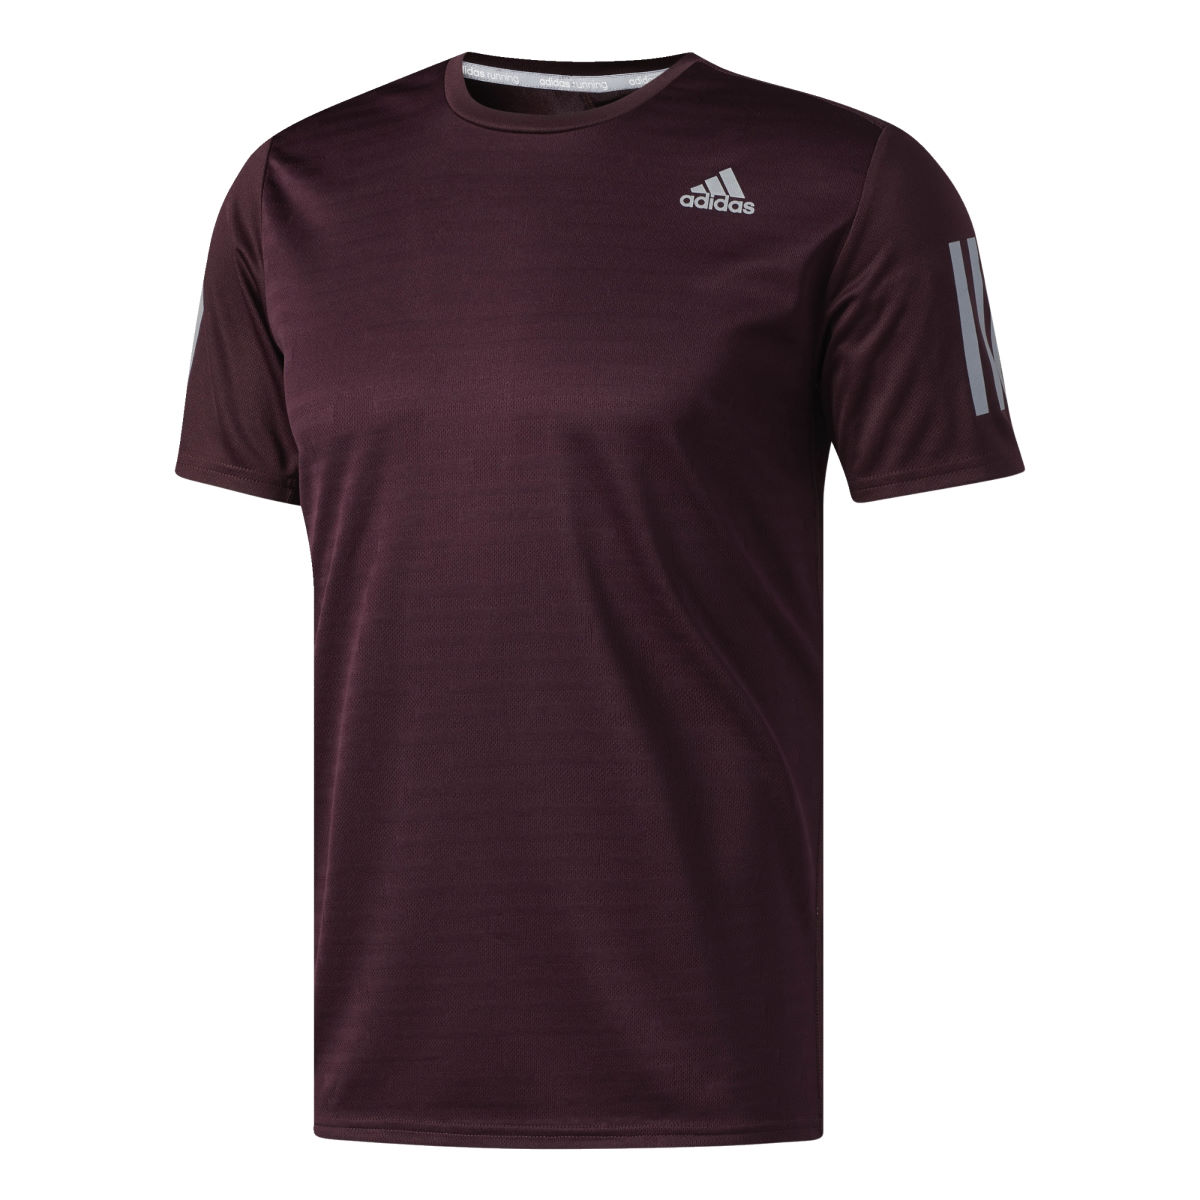 Maillot Adidas Response (manches courtes, PE17) - M